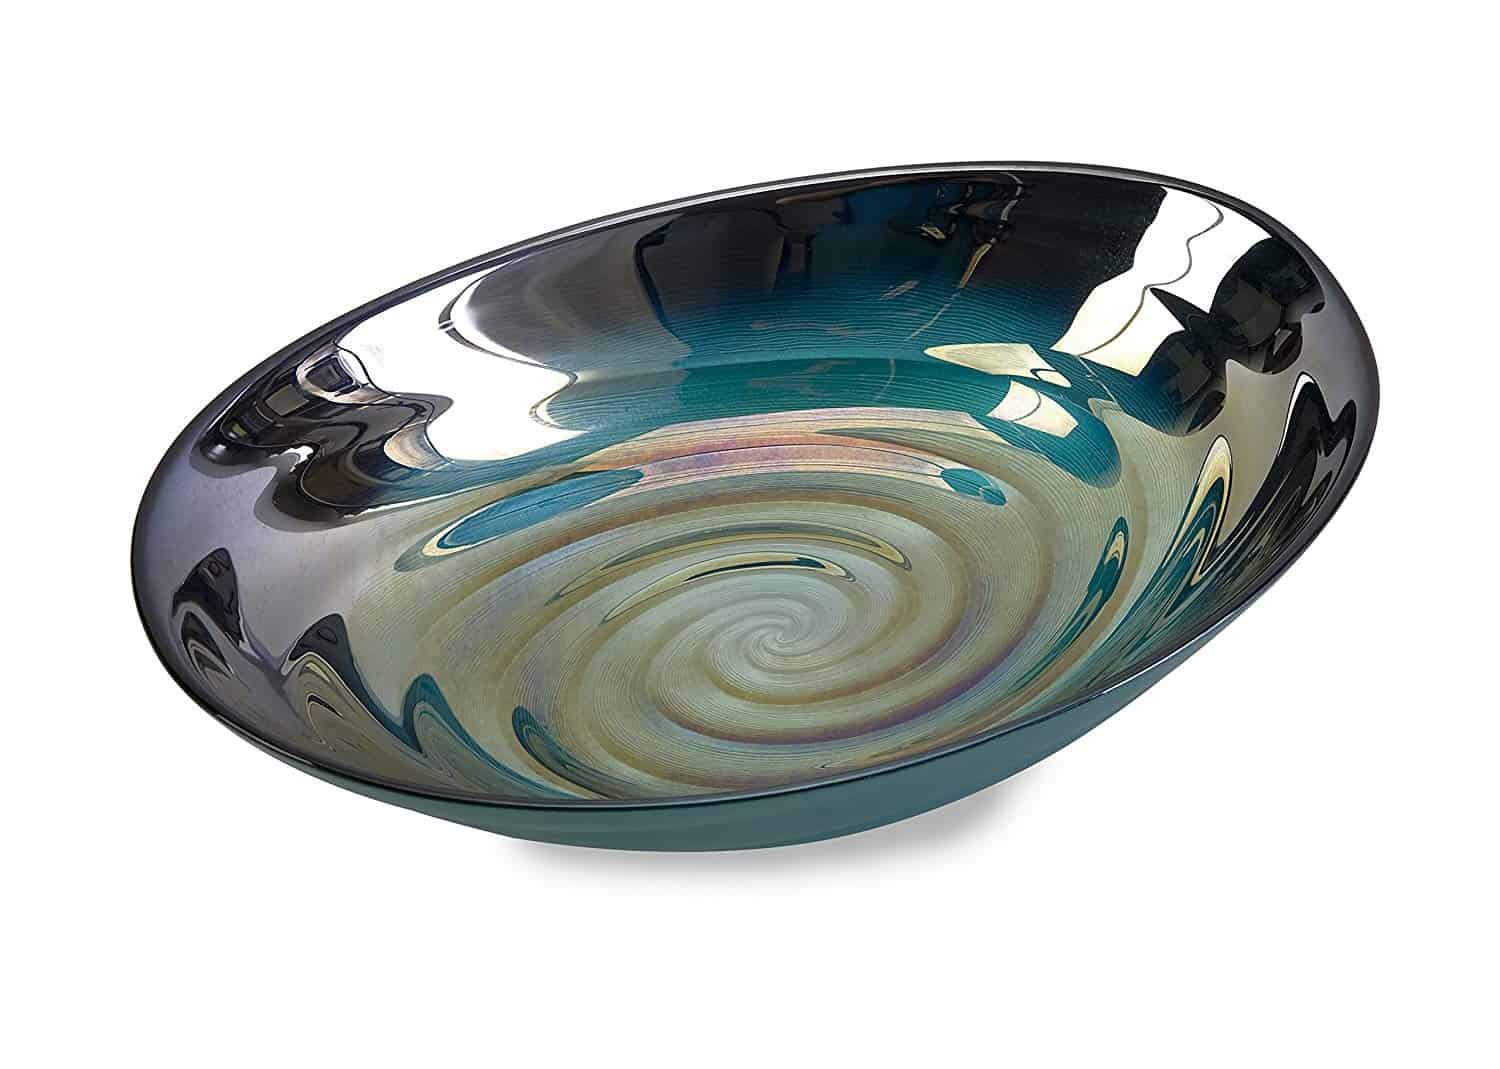 This beautiful food safe bowl is reminiscent of the inside of a shell, which may have housed a pearl once upon a time and it's sure to become a treasured accent in your home collection.